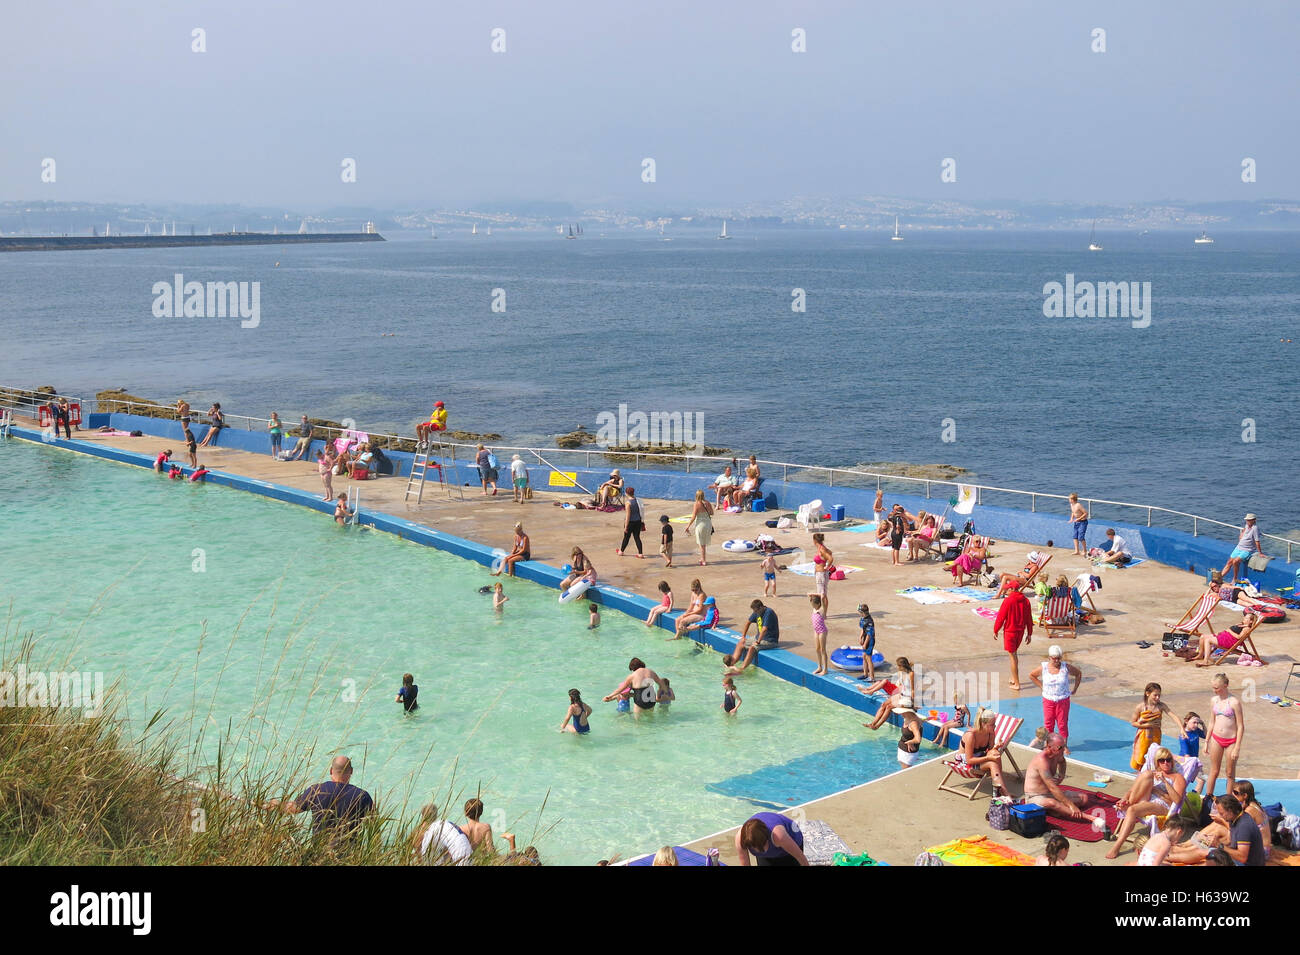 Open Air Swimming Pool Stock Photos Open Air Swimming Pool Stock Images Alamy